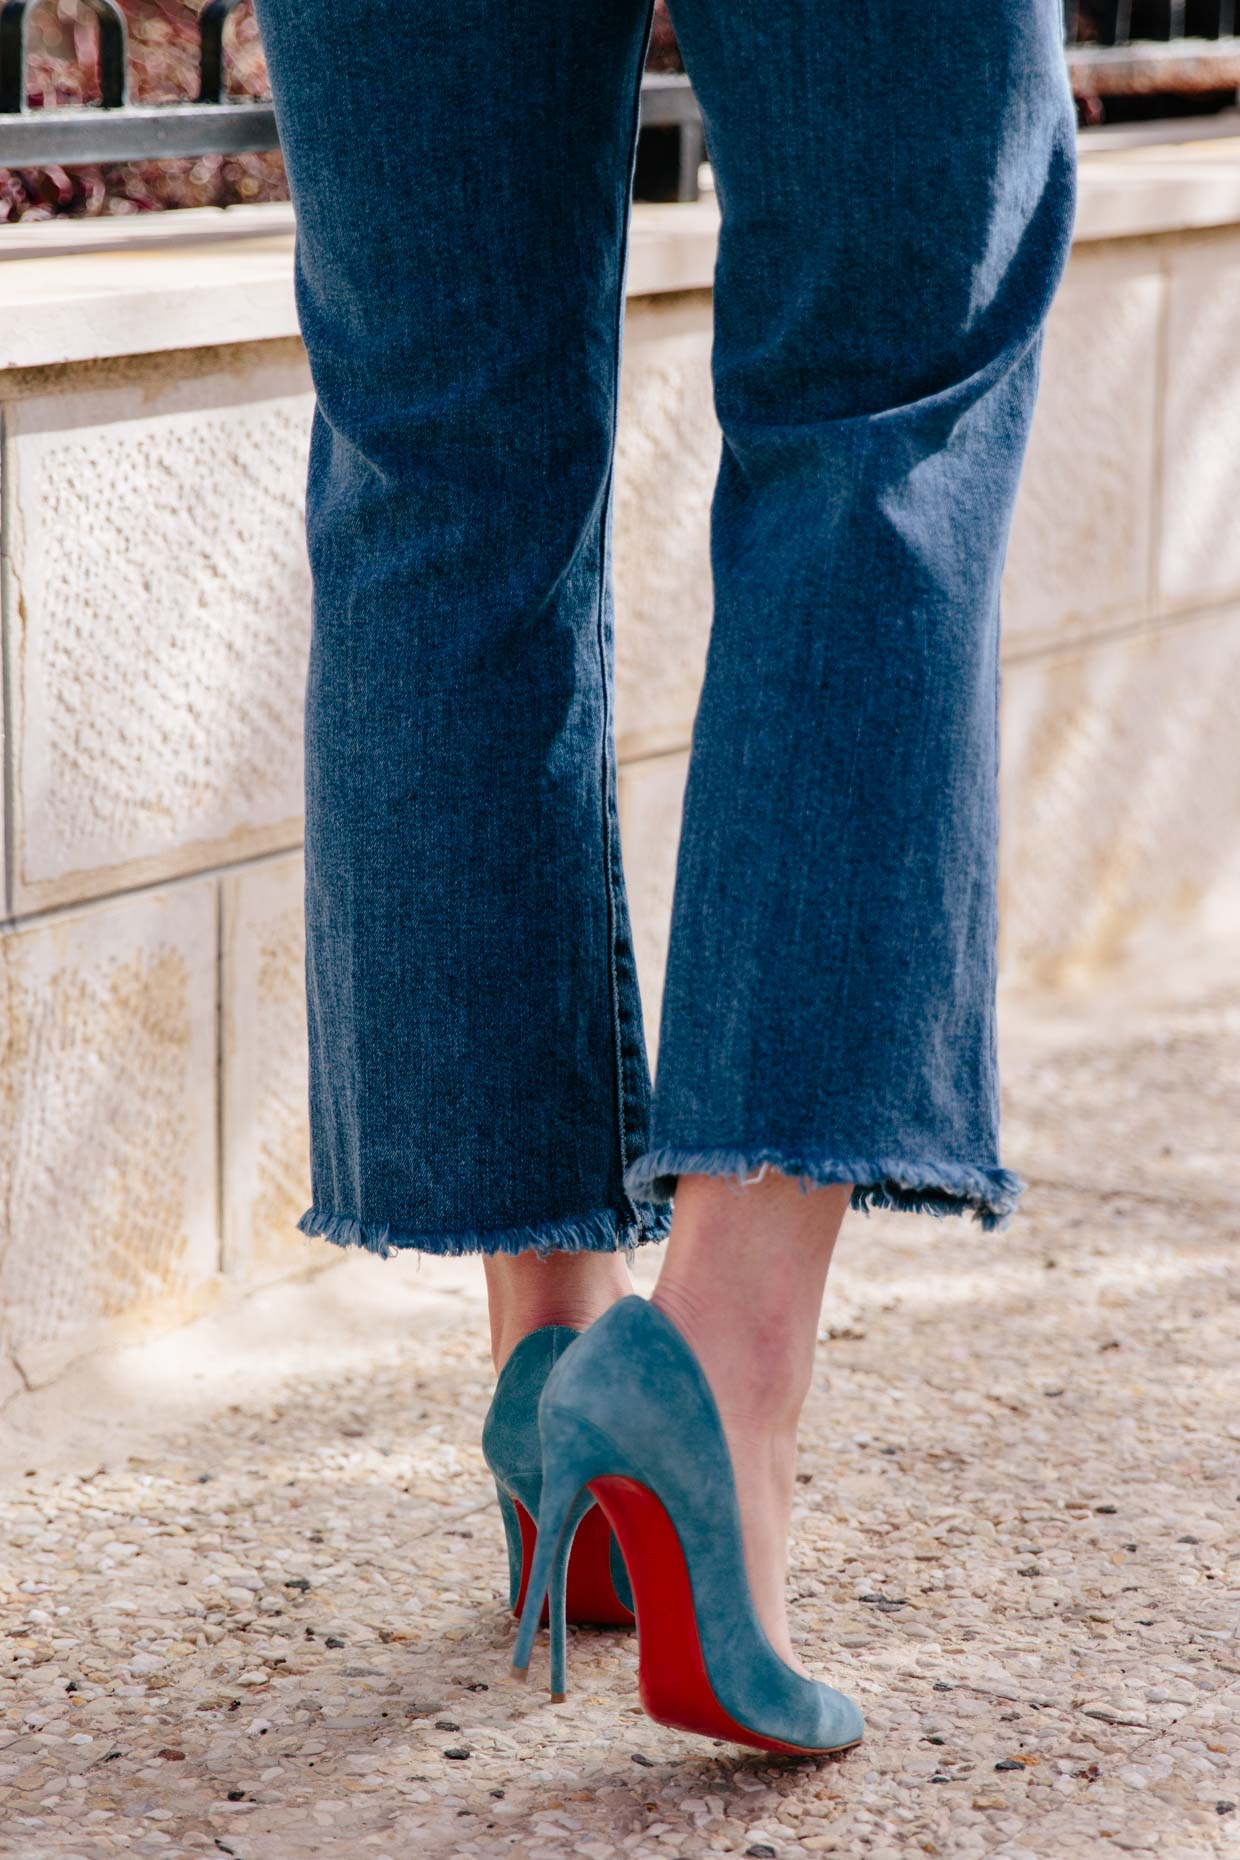 Christian Louboutin blue suede Pigalle